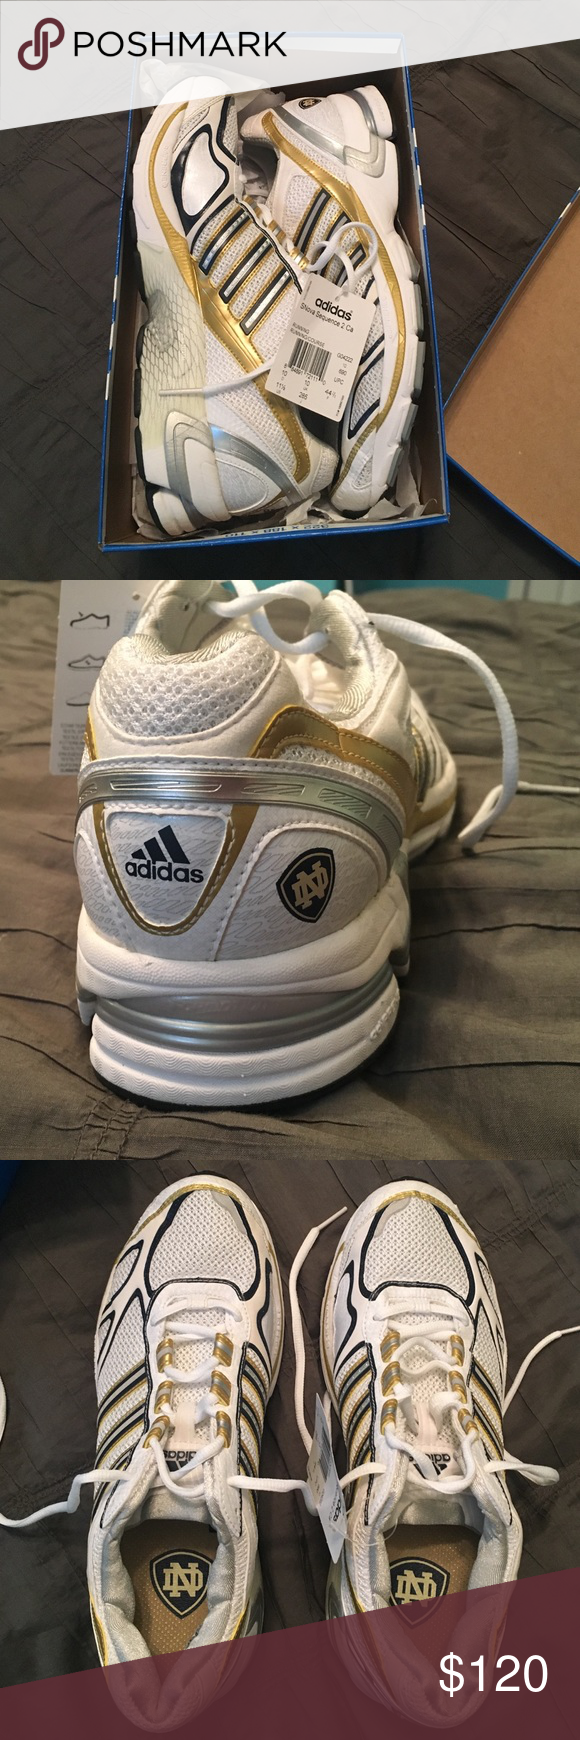 Notre Dame Adidas Volleyball Shoes White Gold And Navy Blue Adidas Volleyball Shoes Notre Dame Logo On H Adidas Volleyball Shoes Volleyball Shoes Blue Adidas